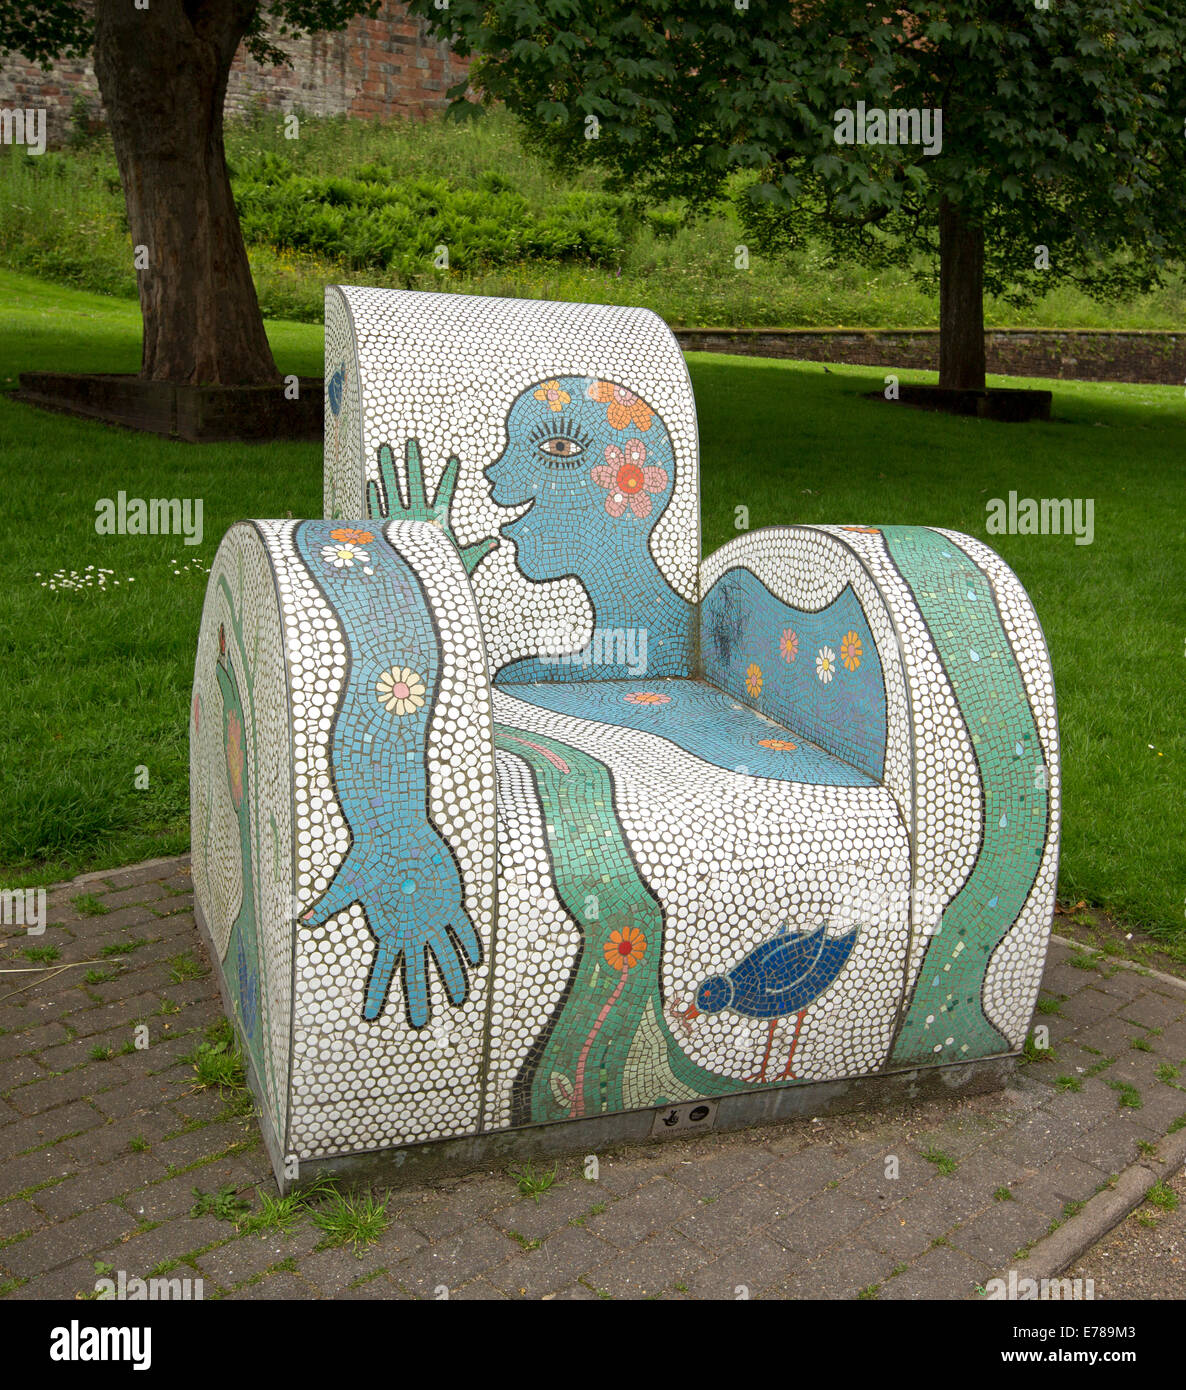 Street art, seating in public park, arm chair created with colourful mosaic tiles and smiling face design in Carlisle, Stock Photo